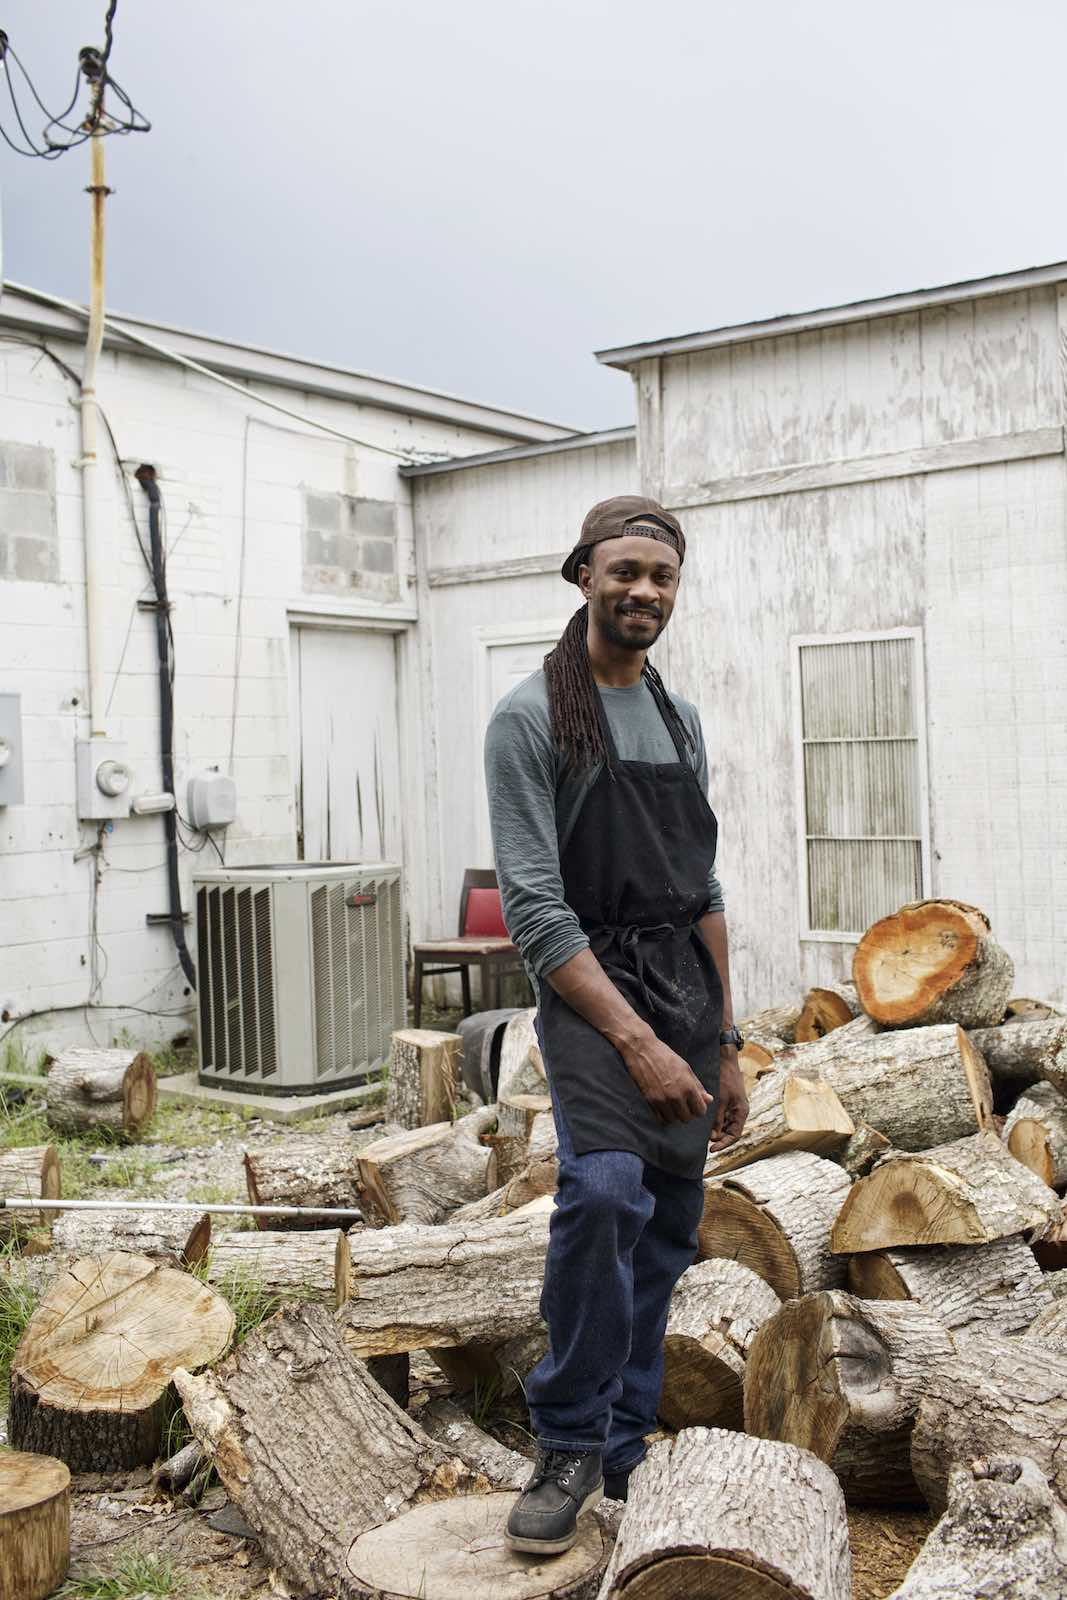 Jody Horton Photography - Cook standing among piles of chopped wood.